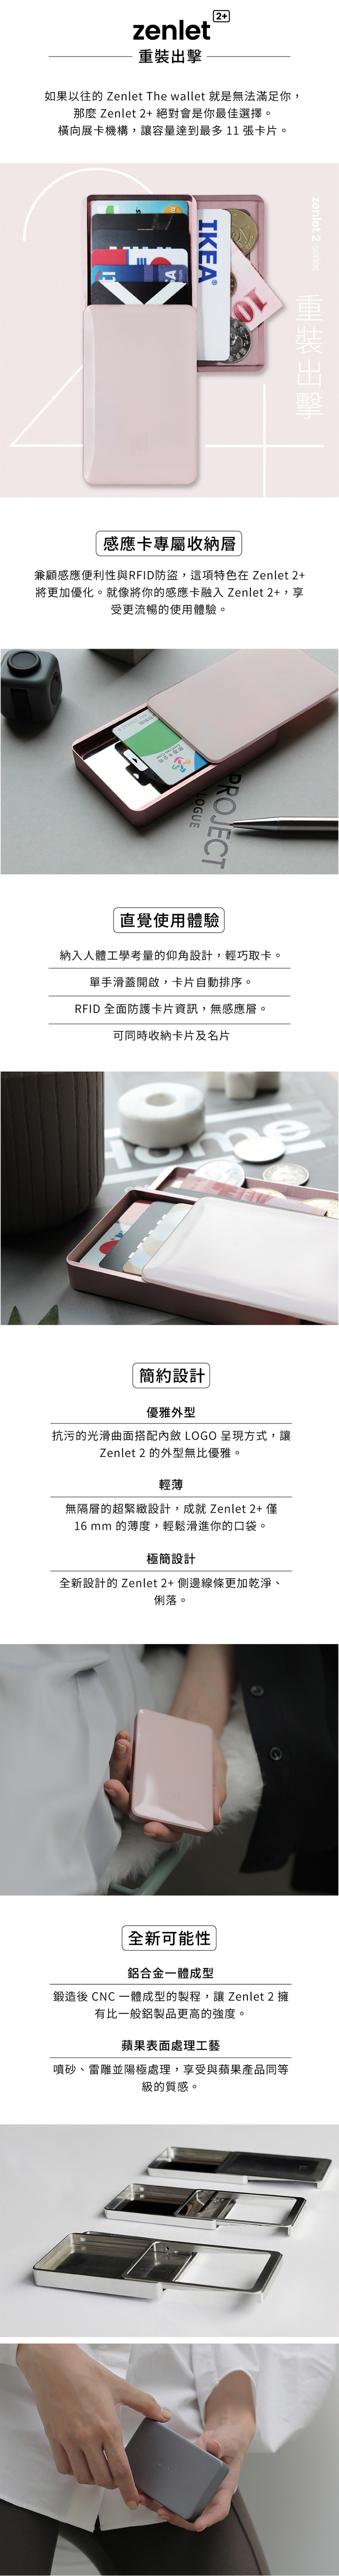 The Ingenious Wallet 行動錢包 2 series - Z2+